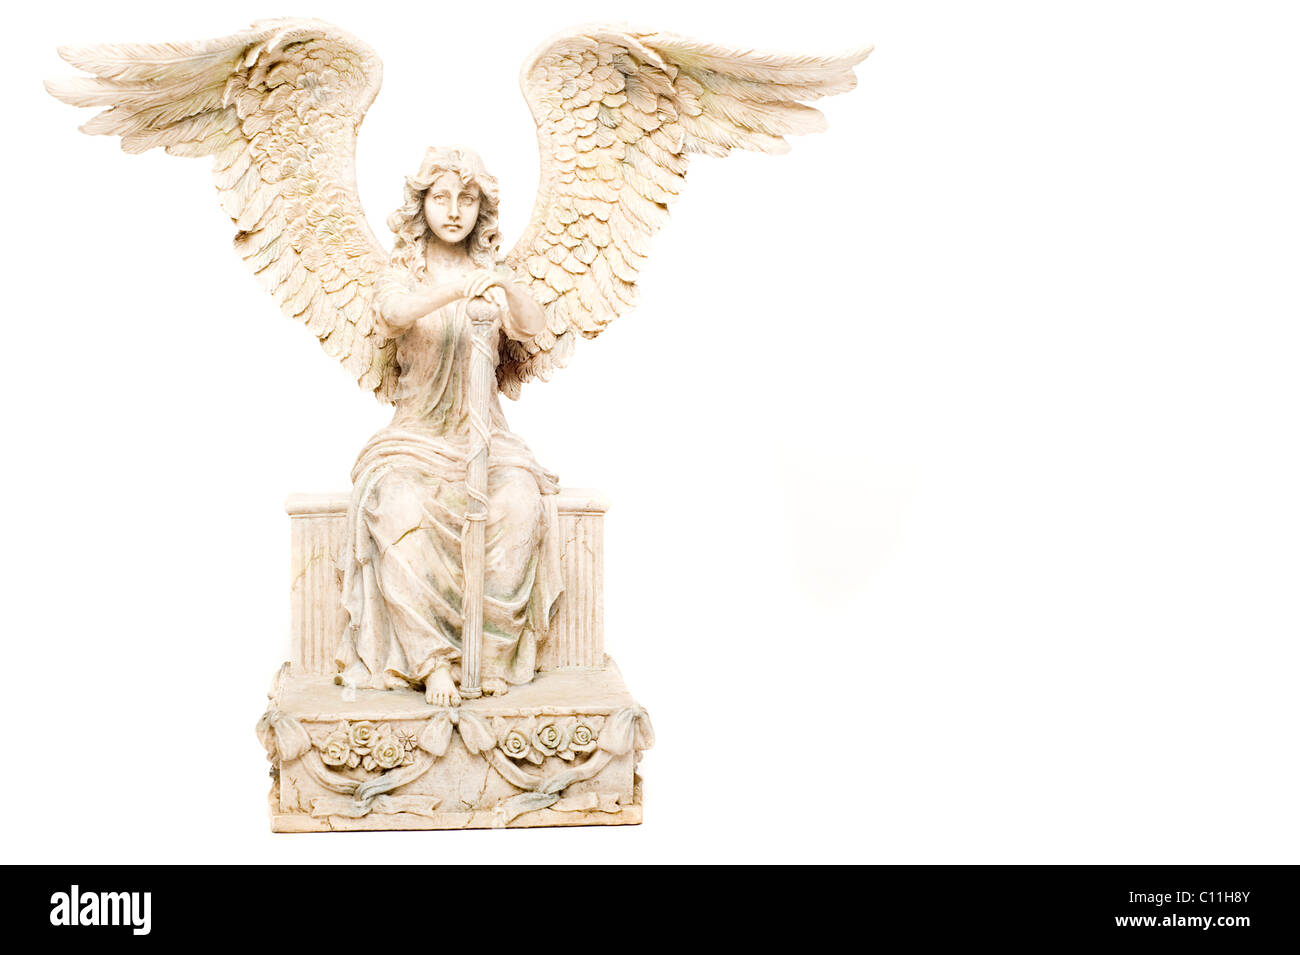 angel statue, isolated - Stock Image